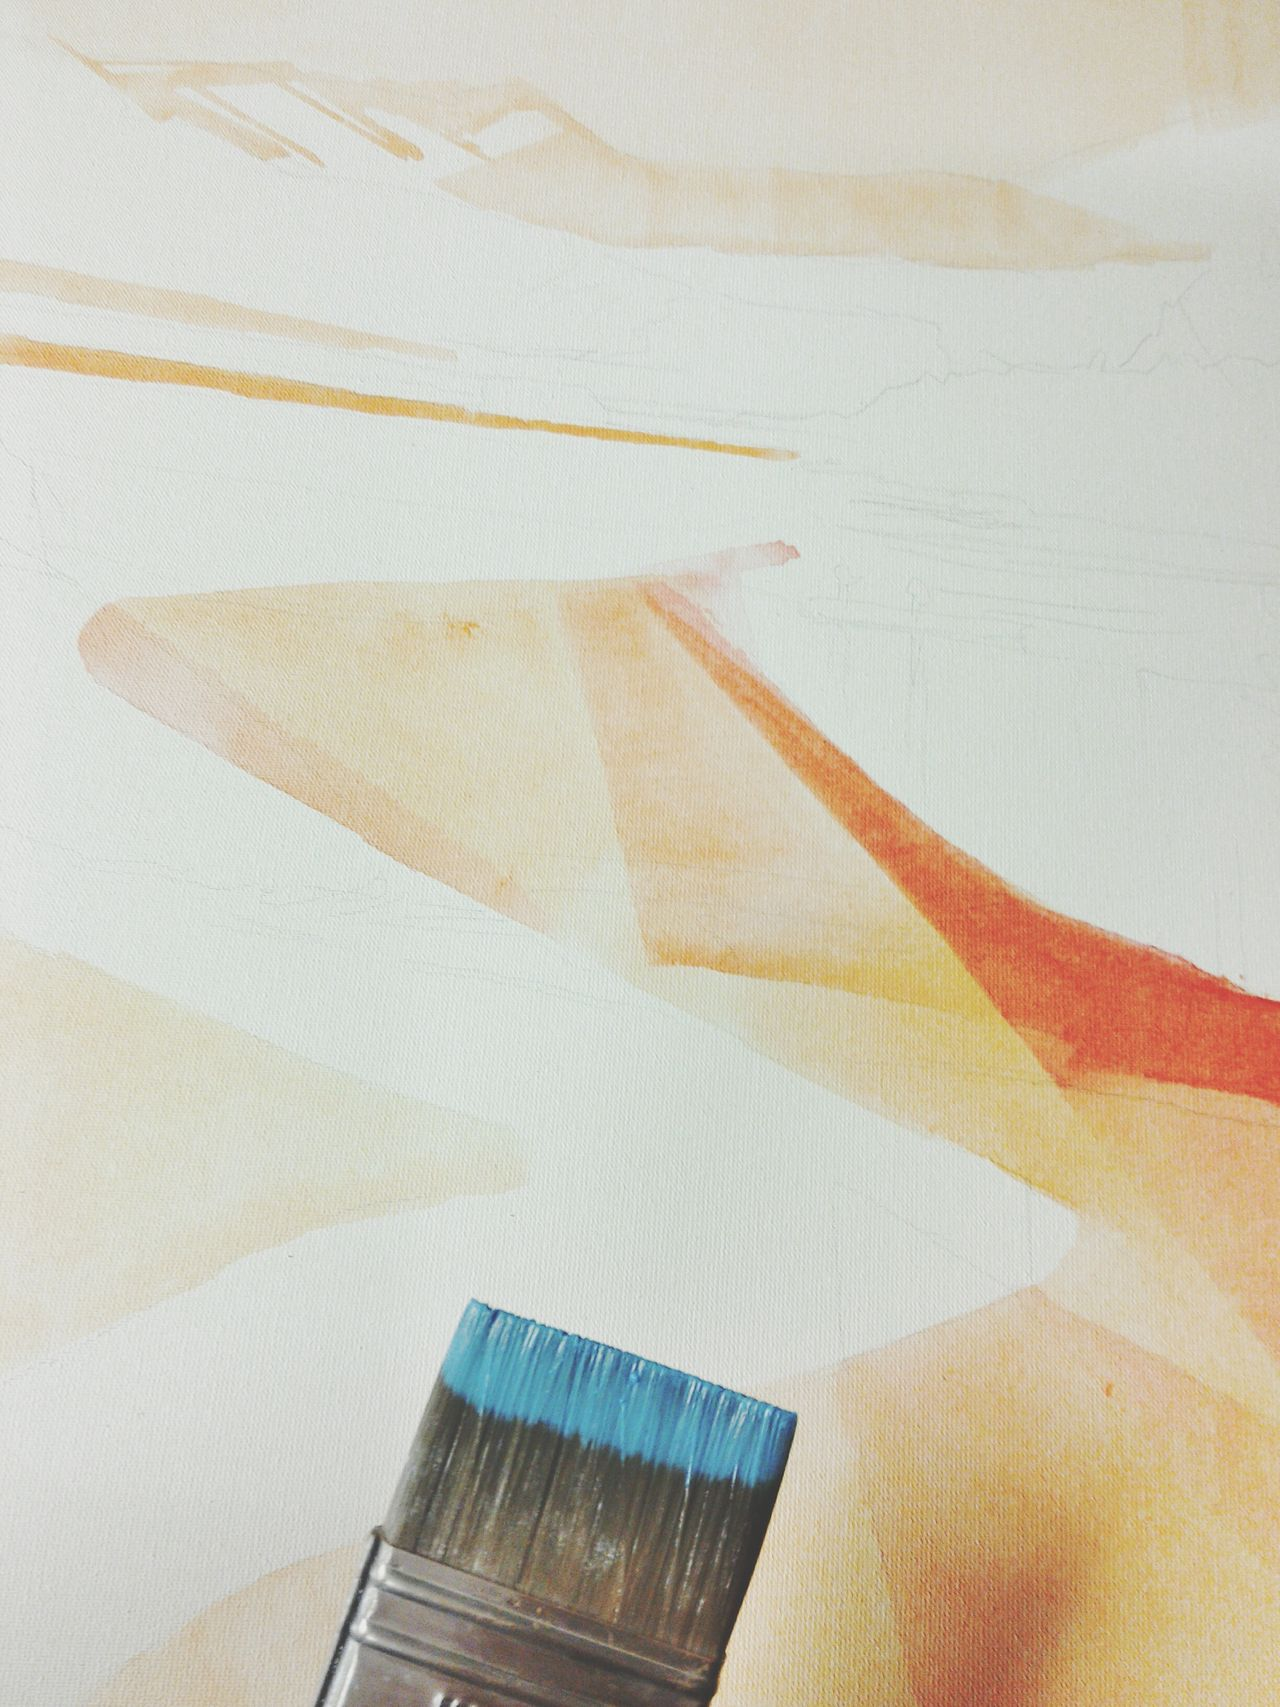 Painting In Progress White Background Canvas Fresh Paint Orange Color Painting Tools Paint Brush Painting Detail Indoors  Indoors  Close-up Blue Color Acrylic Painting Abstract Complementary Colors Creativity ArtWork